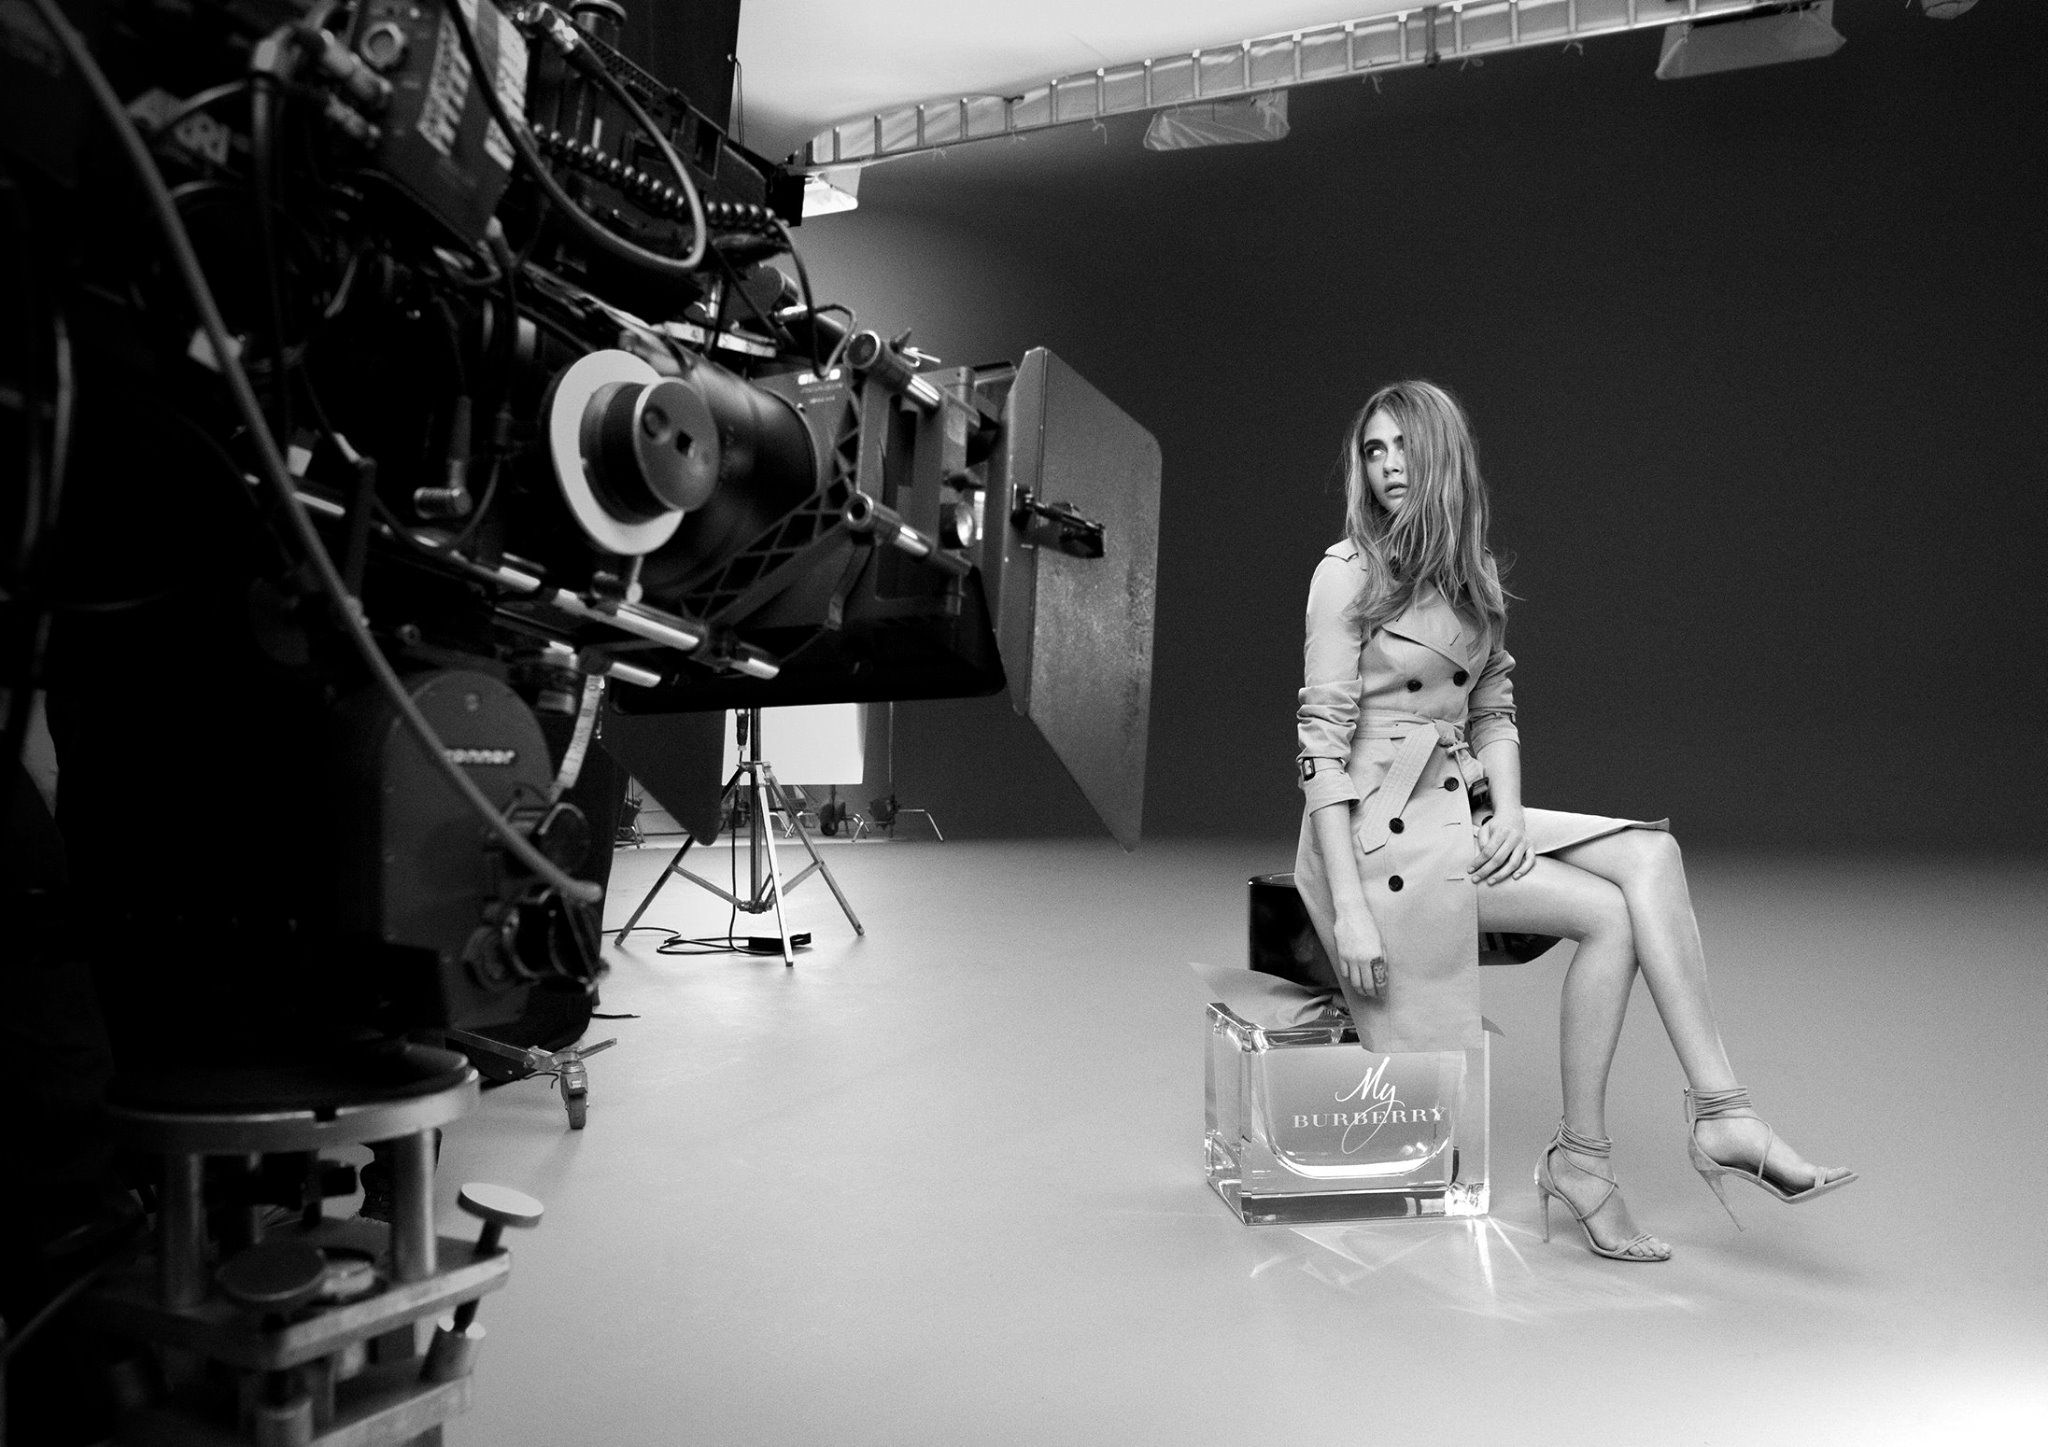 Behind-the-scenes of the #MyBurberry fragrance campaign, shot by Mario Testino.